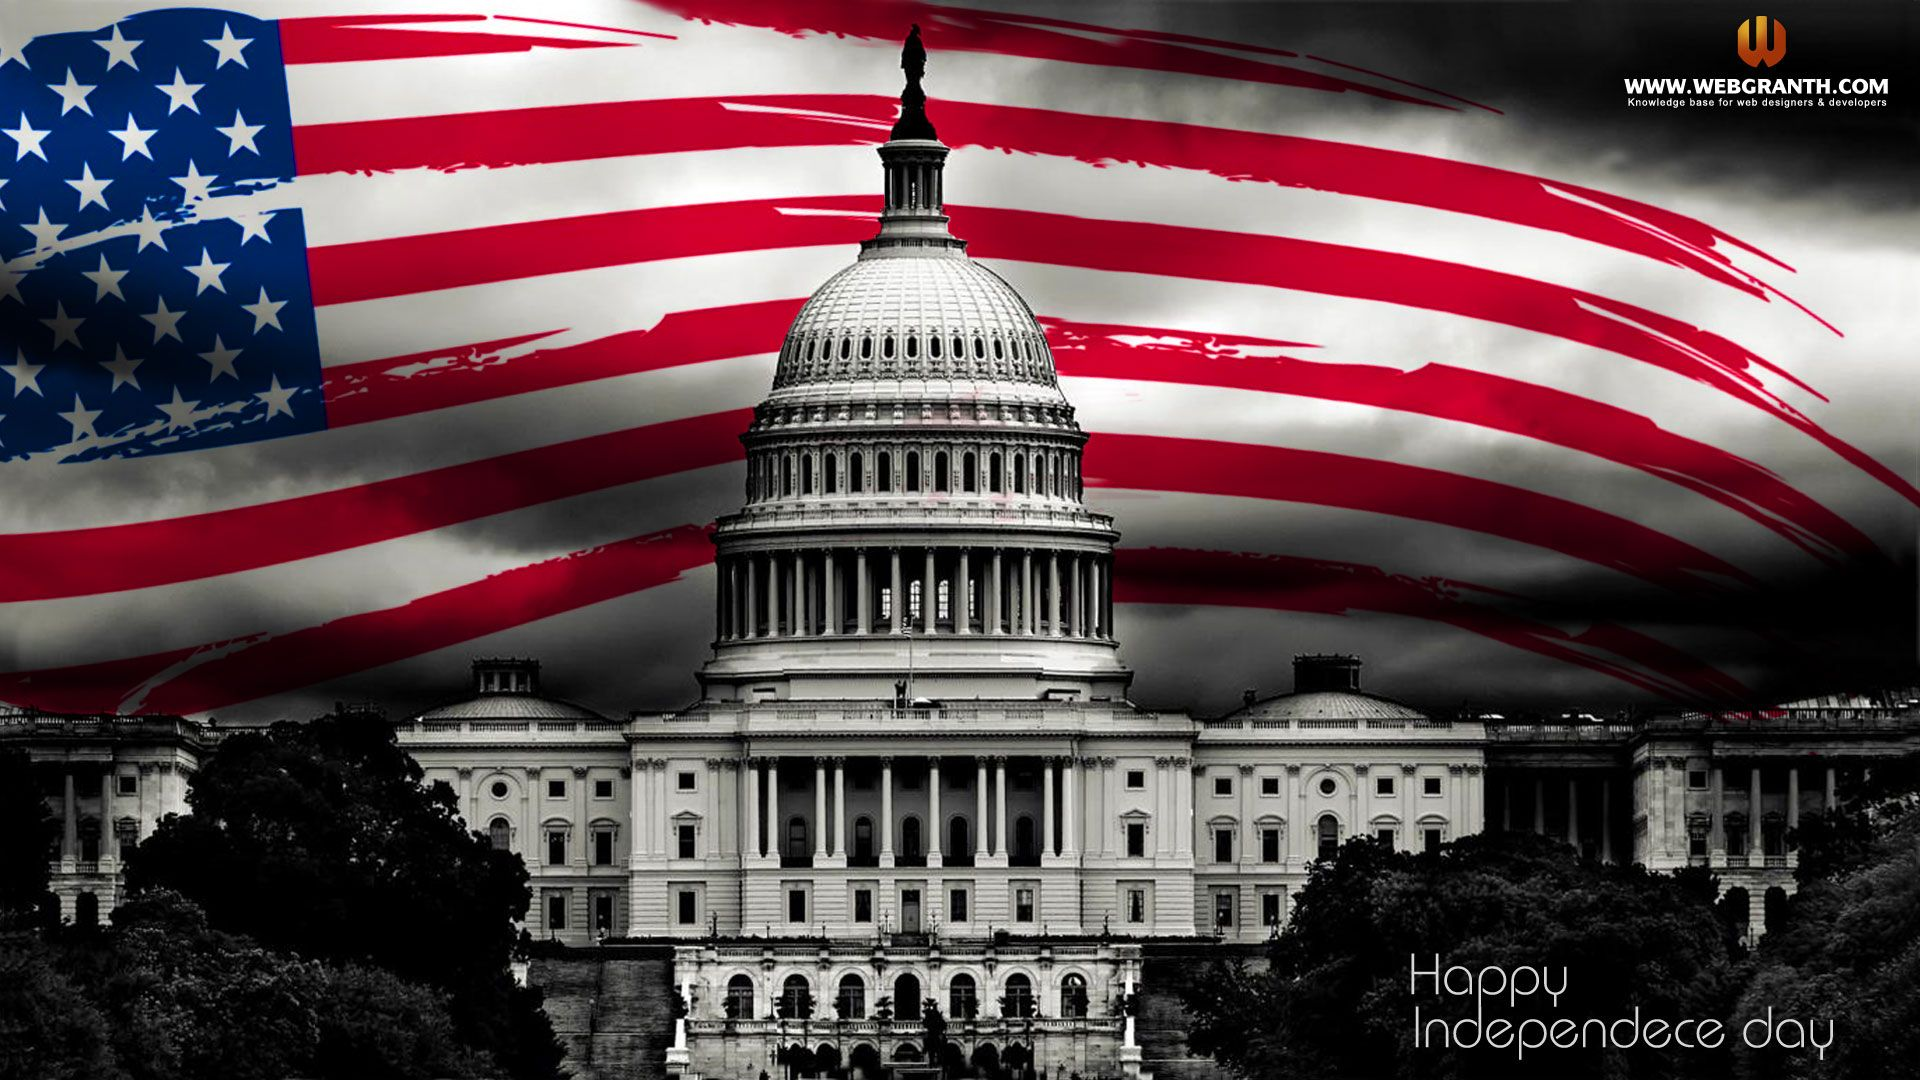 Free Desktop Wallpaper Independence Day USA Download